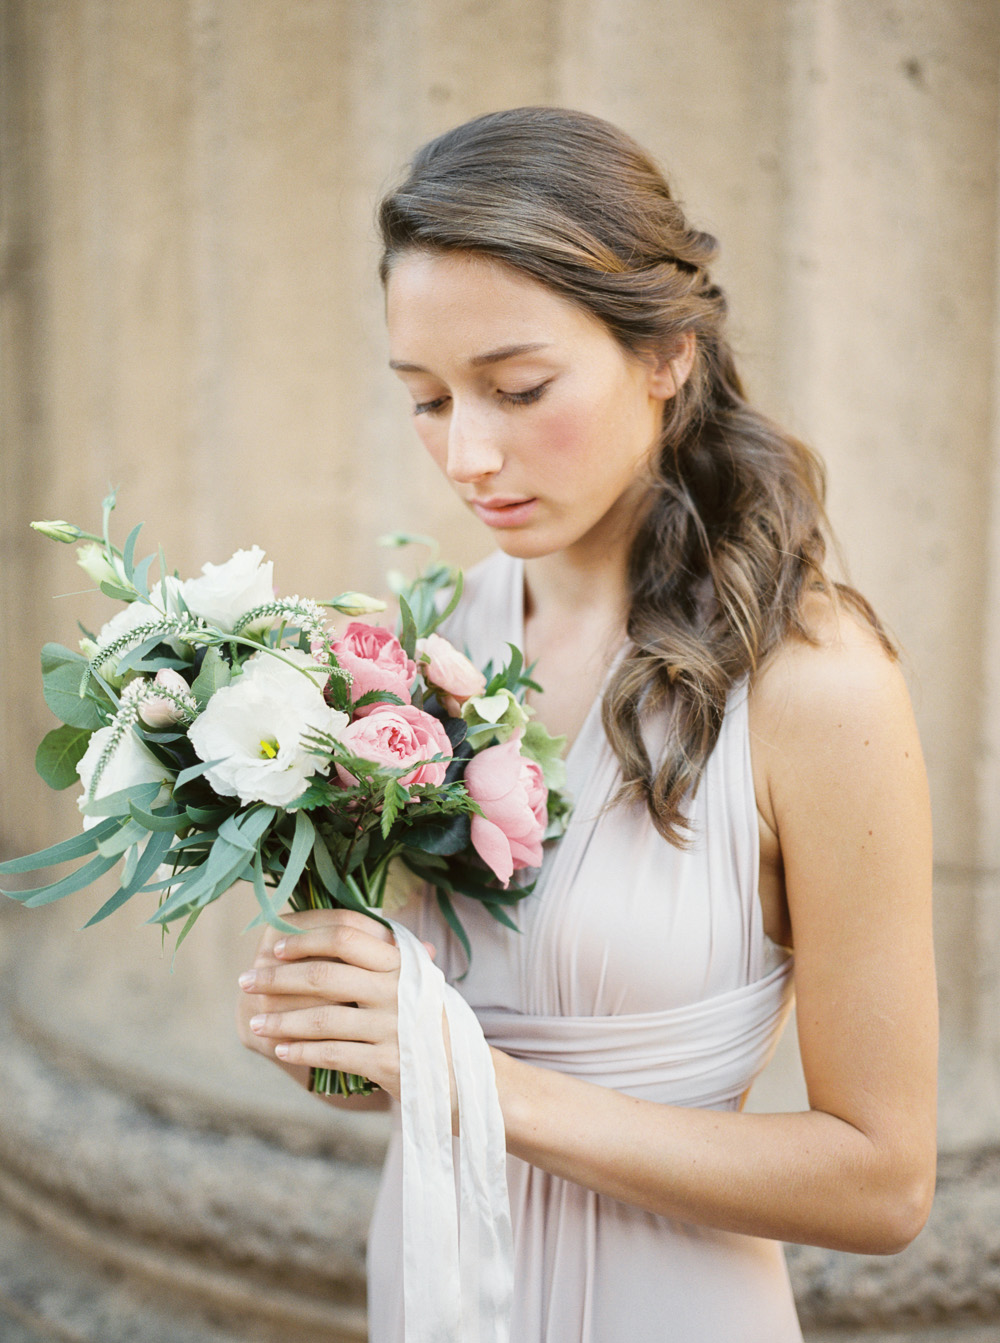 Romantic bridesmaid hair and makeup inspiration | by Lara Lam photography